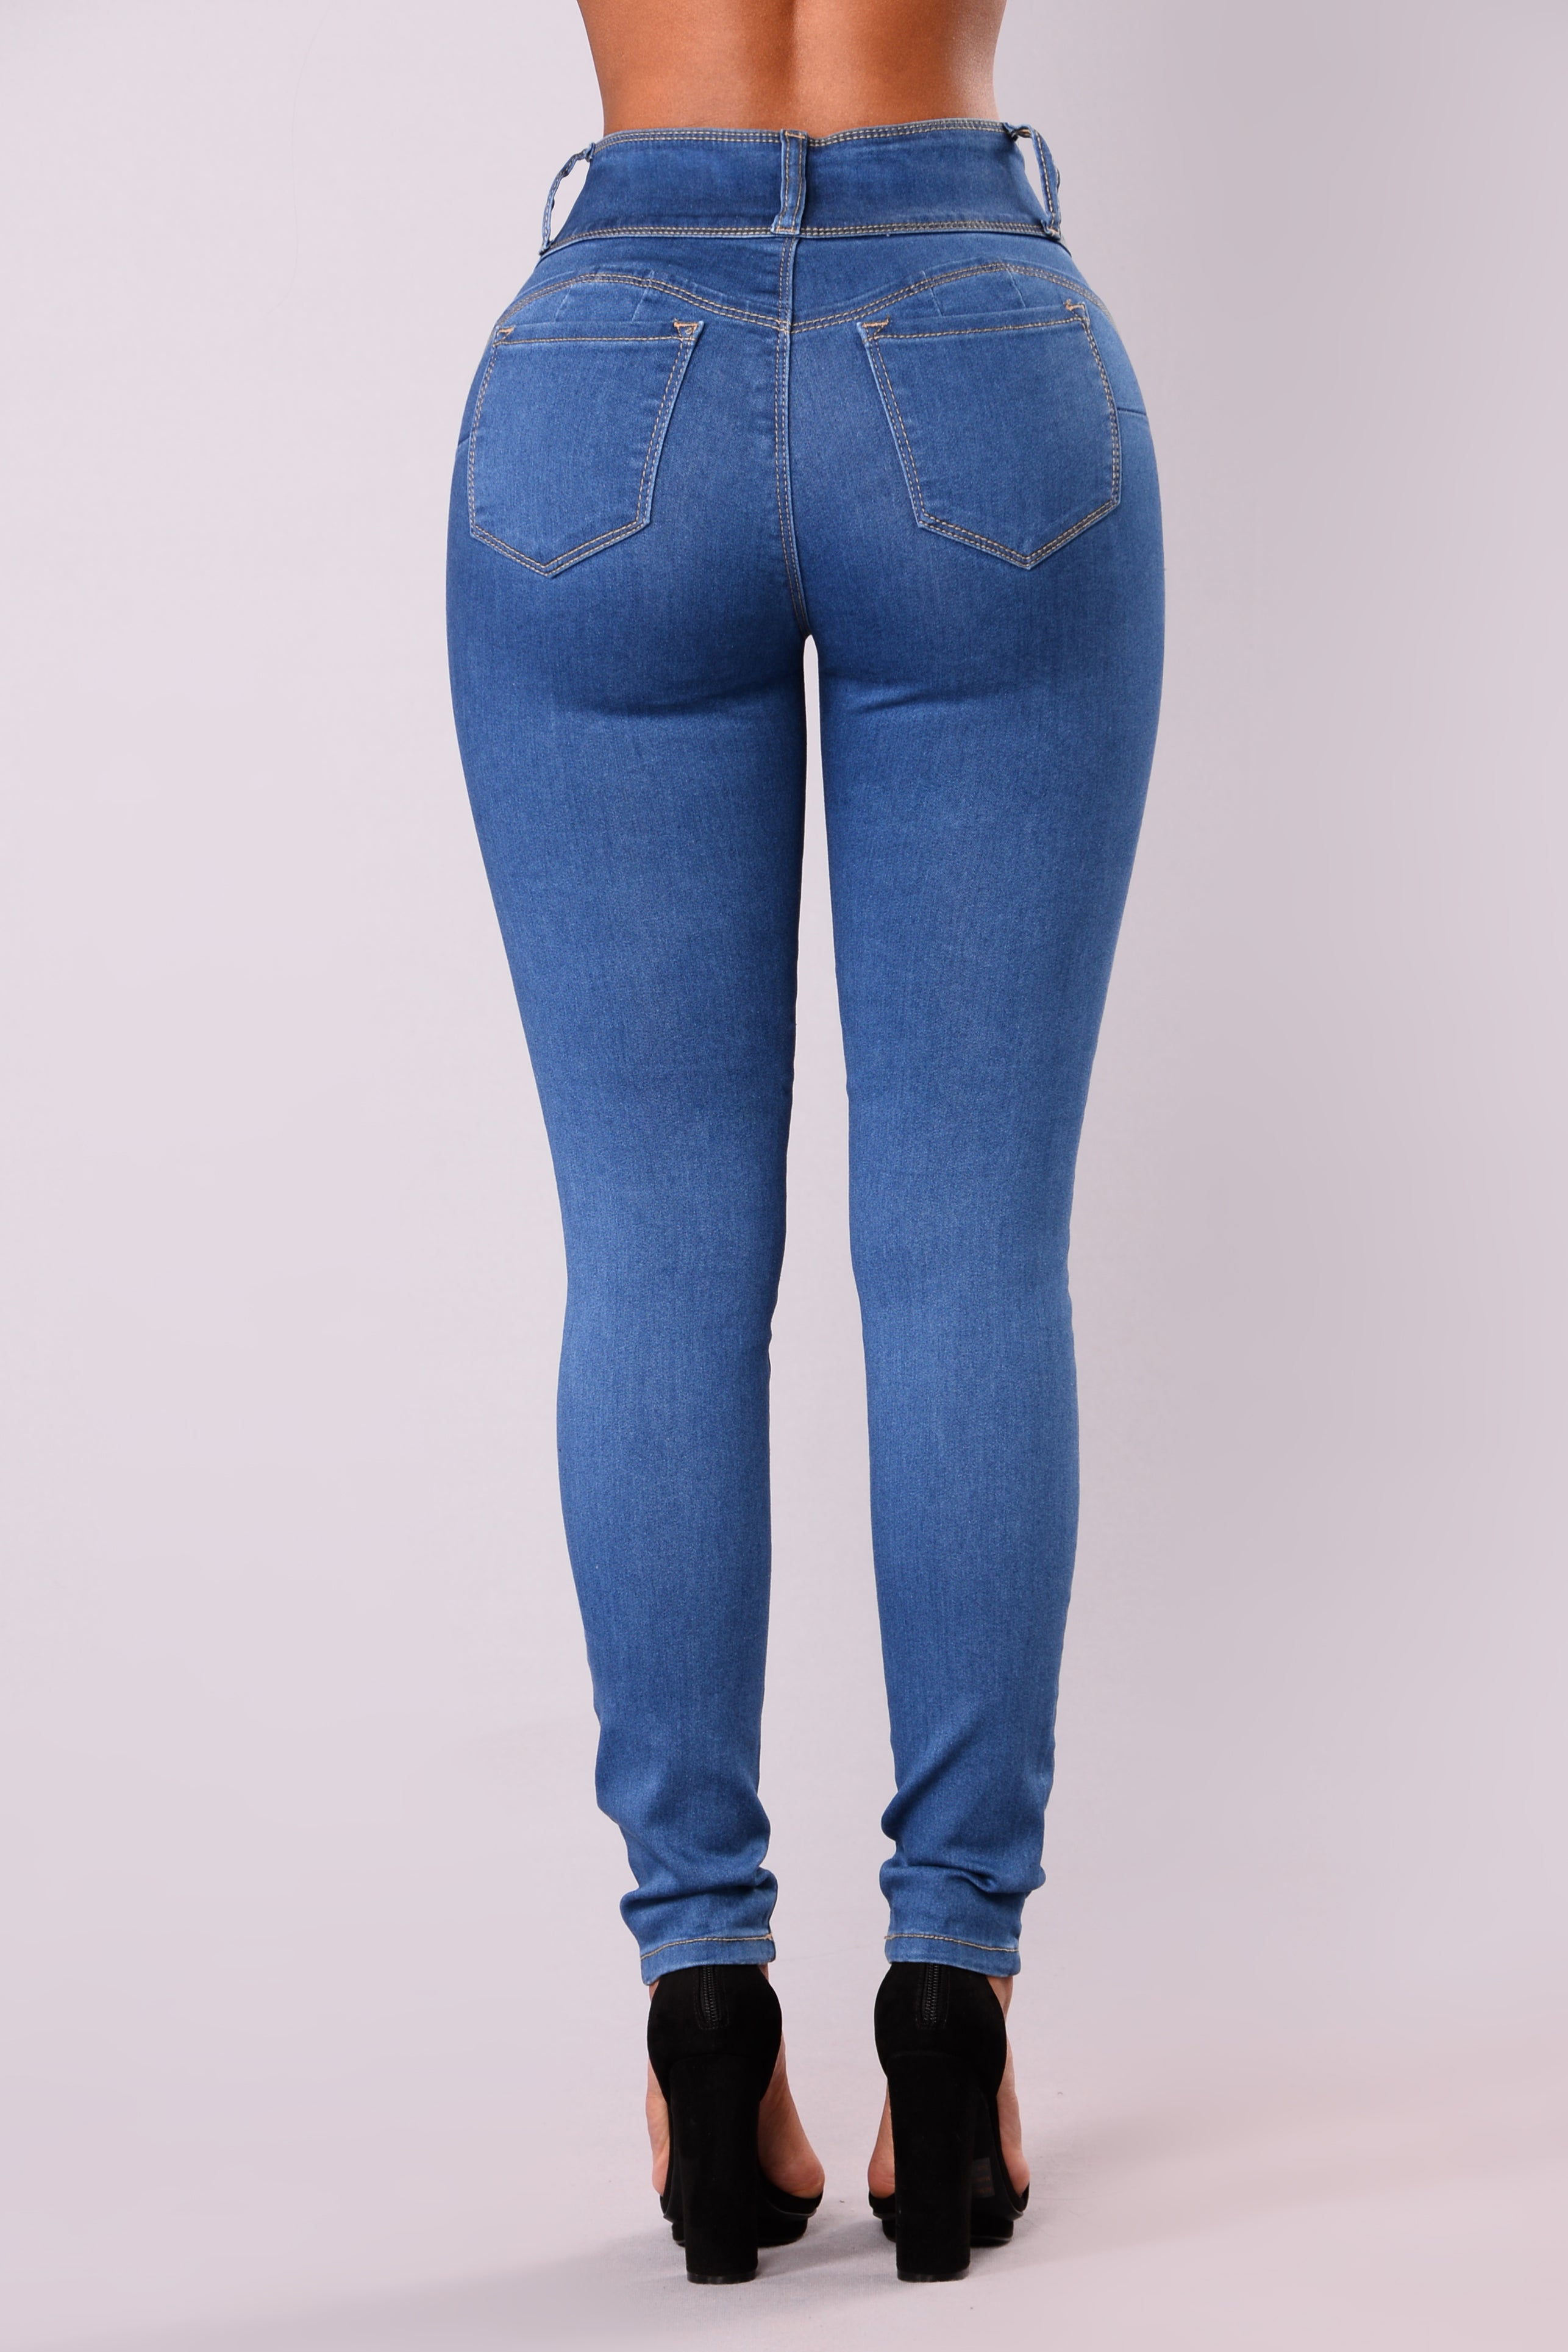 Round Of Applause Booty Shaped Jeans - Medium-6362